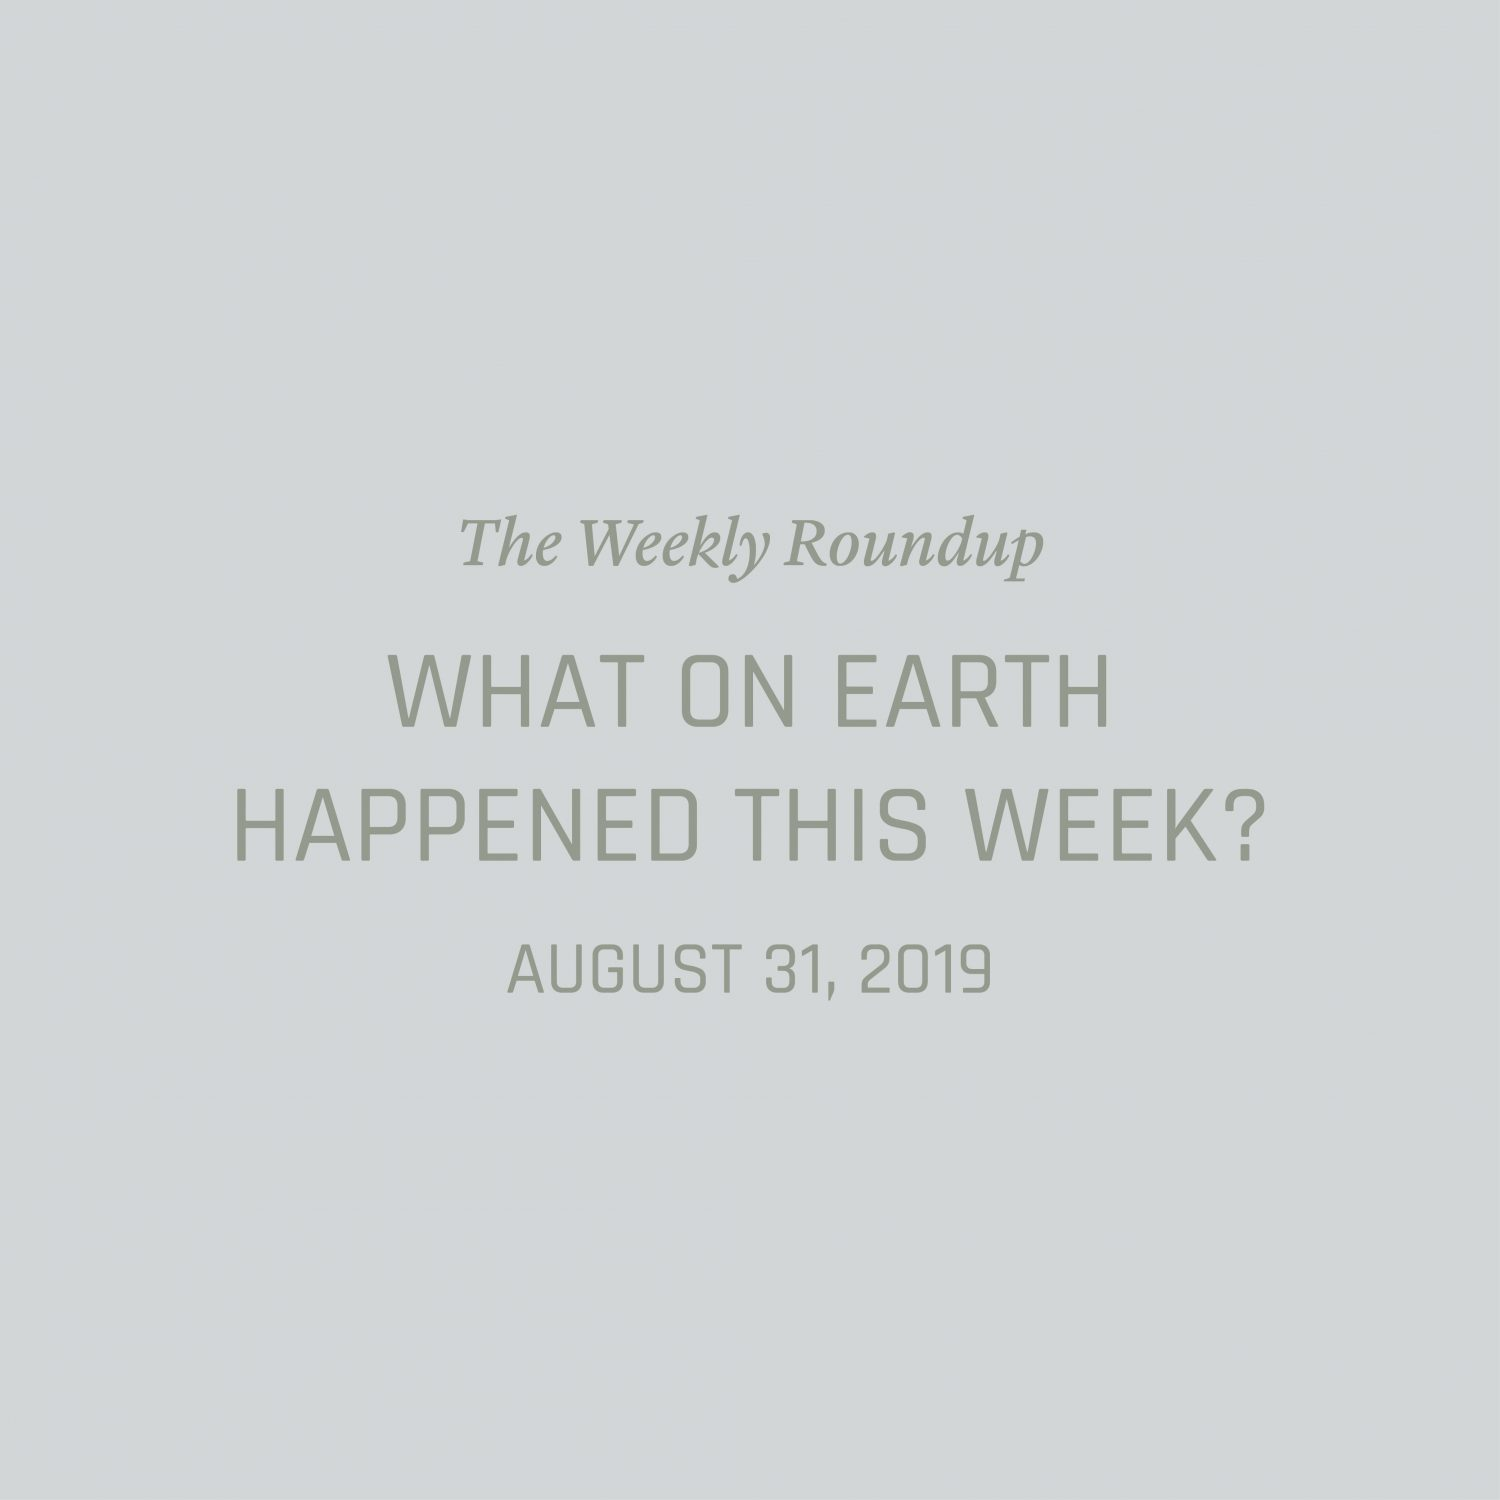 Weekly Environment News Roundup Collection Sustainability Climate Change Nowhere & Everywhere Biodiversity Climate Crisis Summary Good News What happened this week with the environment